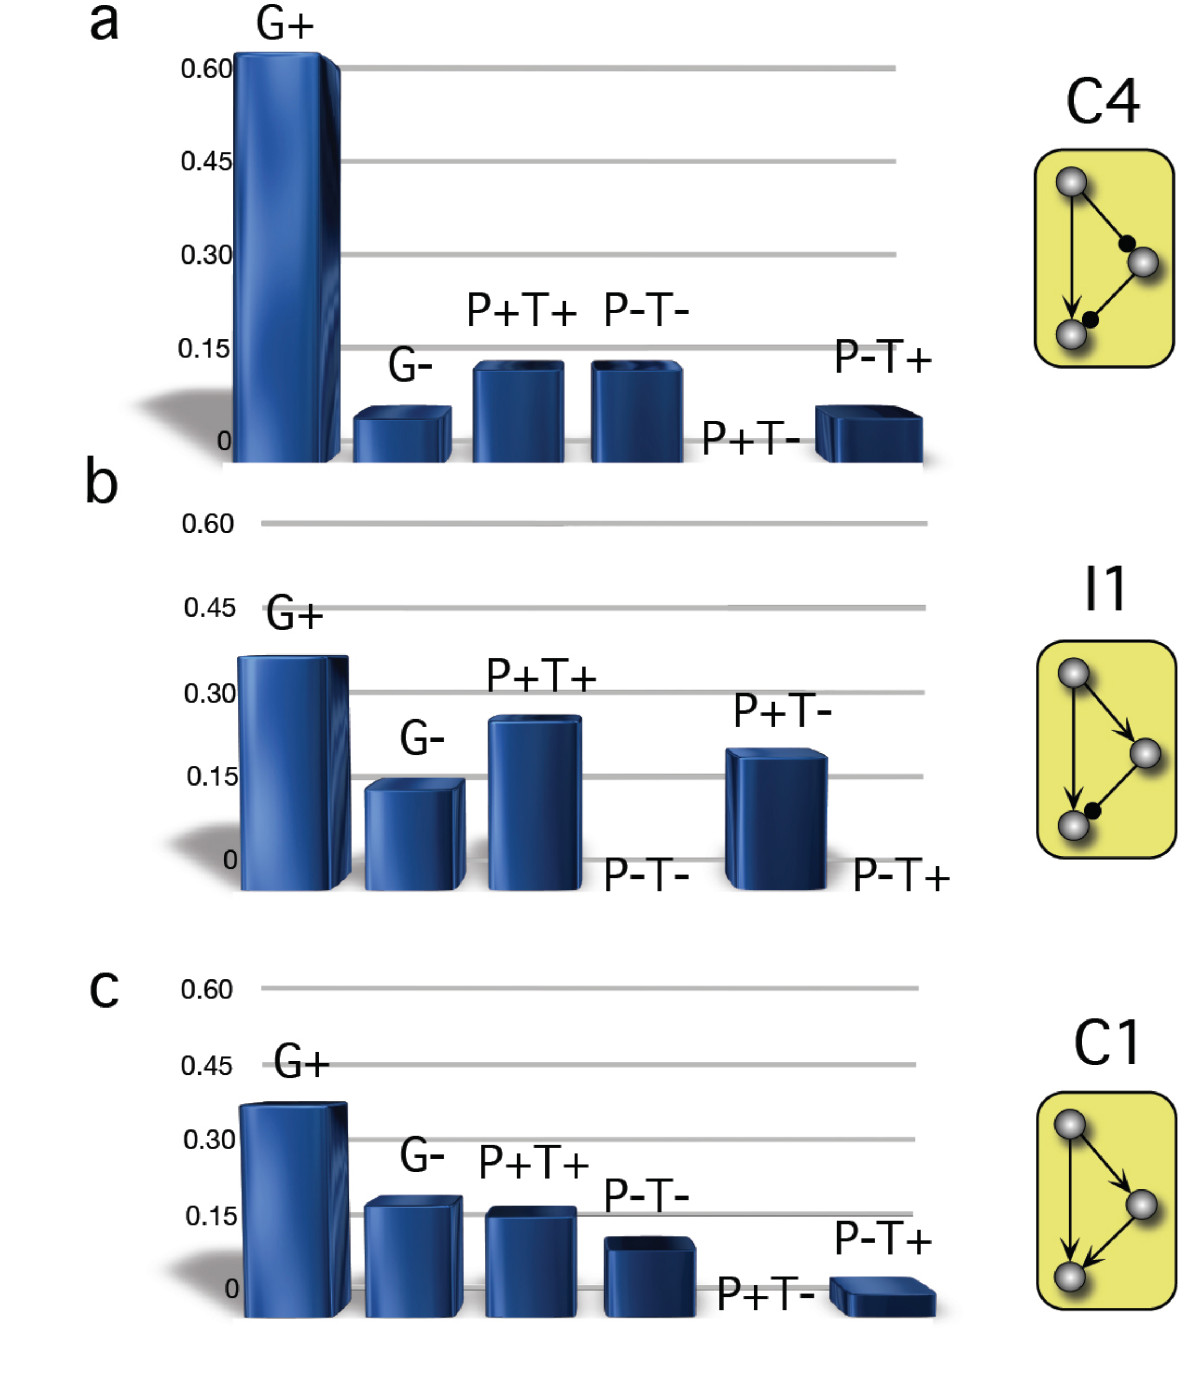 https://static-content.springer.com/image/art%3A10.1186%2F1752-0509-3-84/MediaObjects/12918_2009_Article_352_Fig8_HTML.jpg